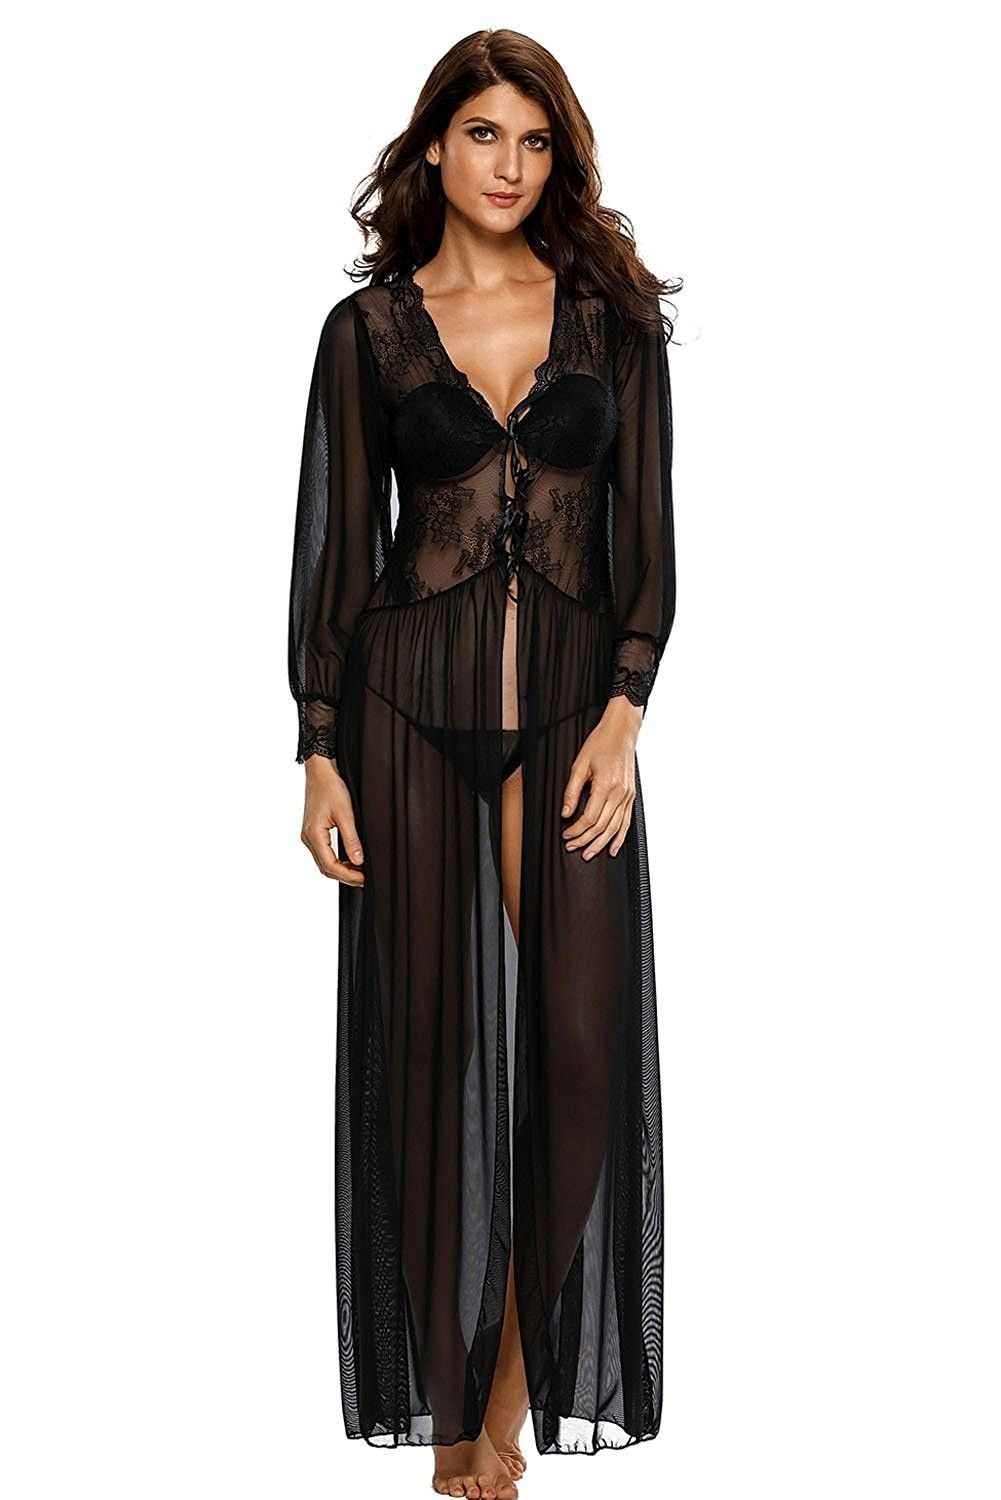 bd6dac4c6c9a Womens Sexy Sheer Long Sleeve Gown Dress Lace Robe Lingerie Set With ...